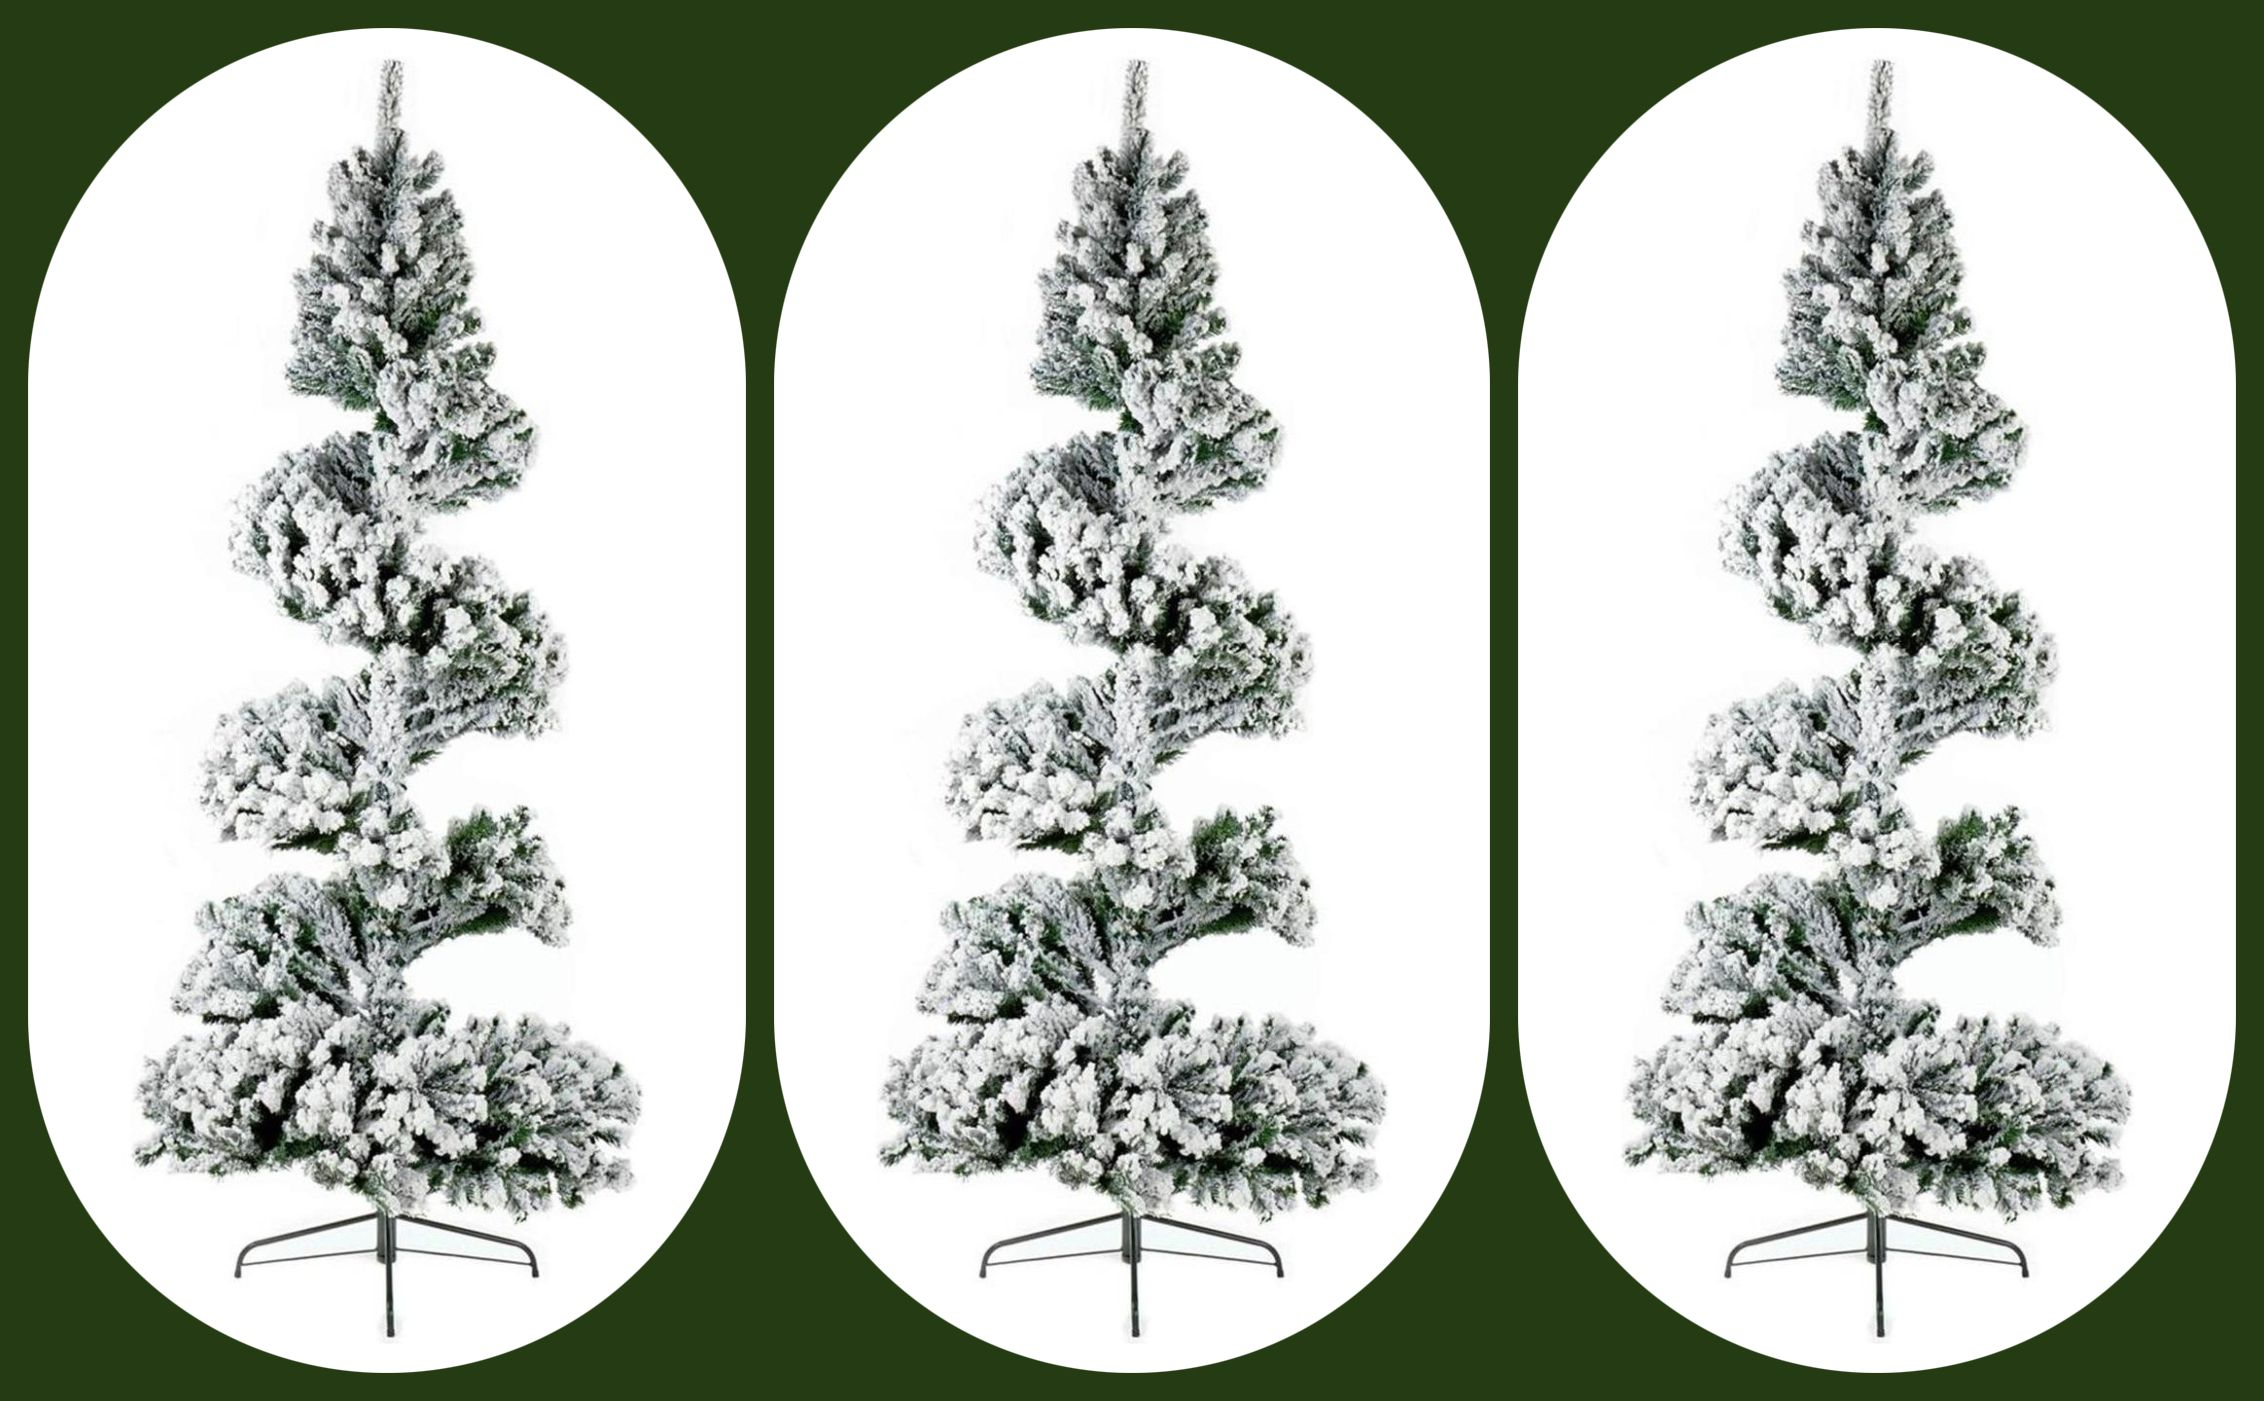 Argos is selling a spiral Christmas tree this year – but would you buy one?